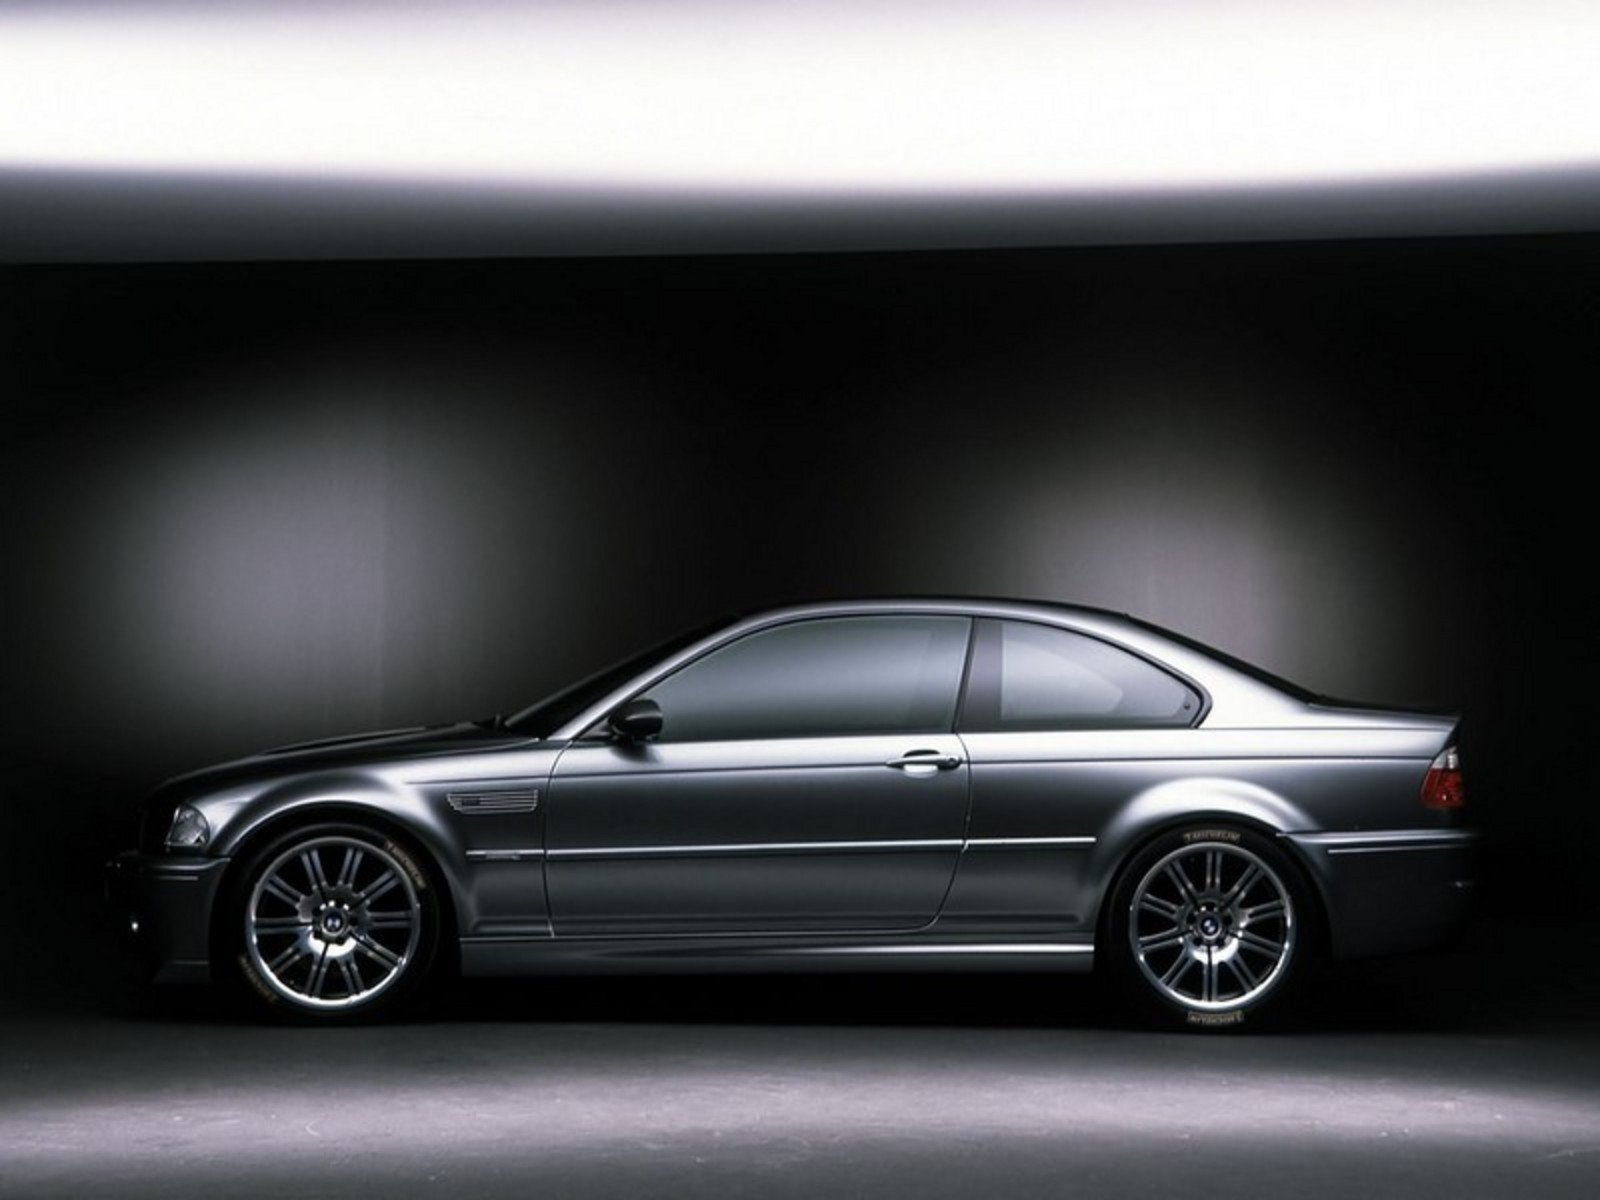 2000 bmw e46 m3 review picture 84221 car review top. Black Bedroom Furniture Sets. Home Design Ideas